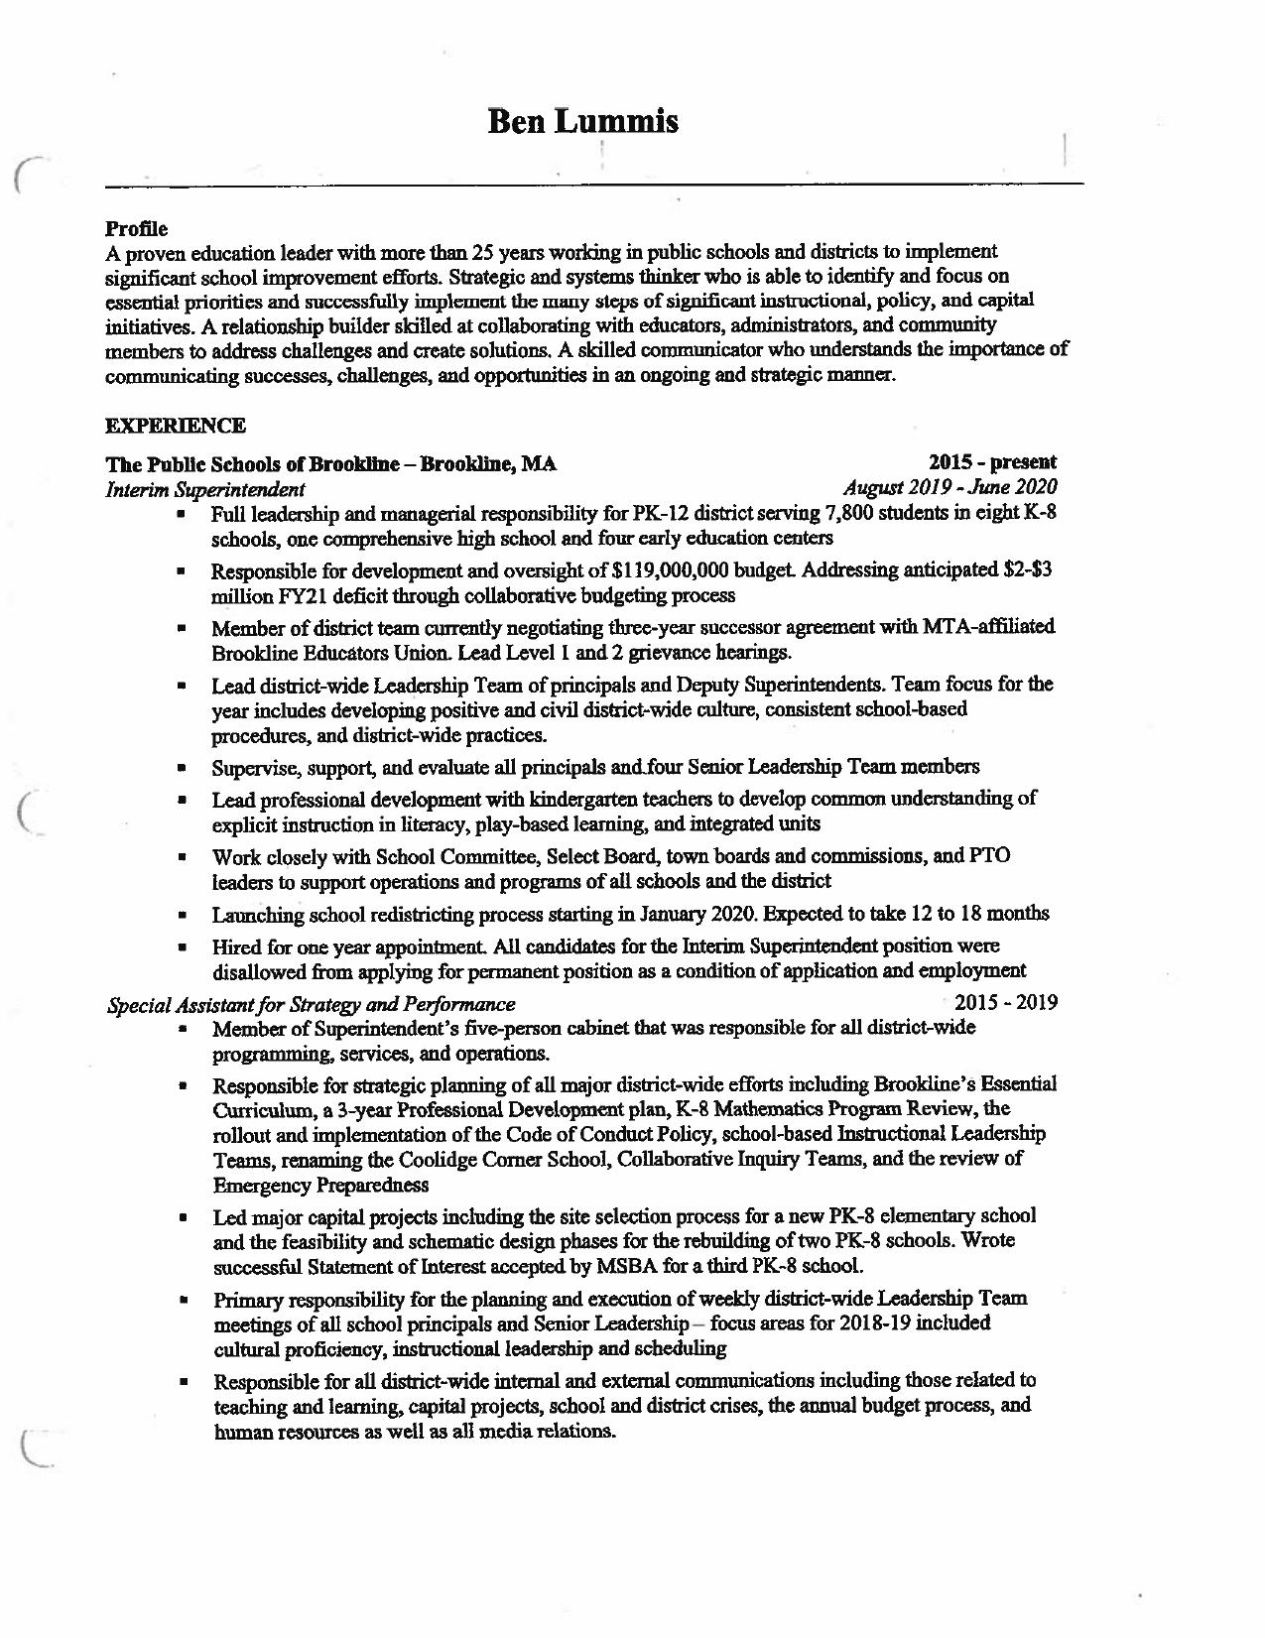 candidate resume ben lummis salemnews listings on crossword preview clinical research Resume Listings On A Resume Crossword